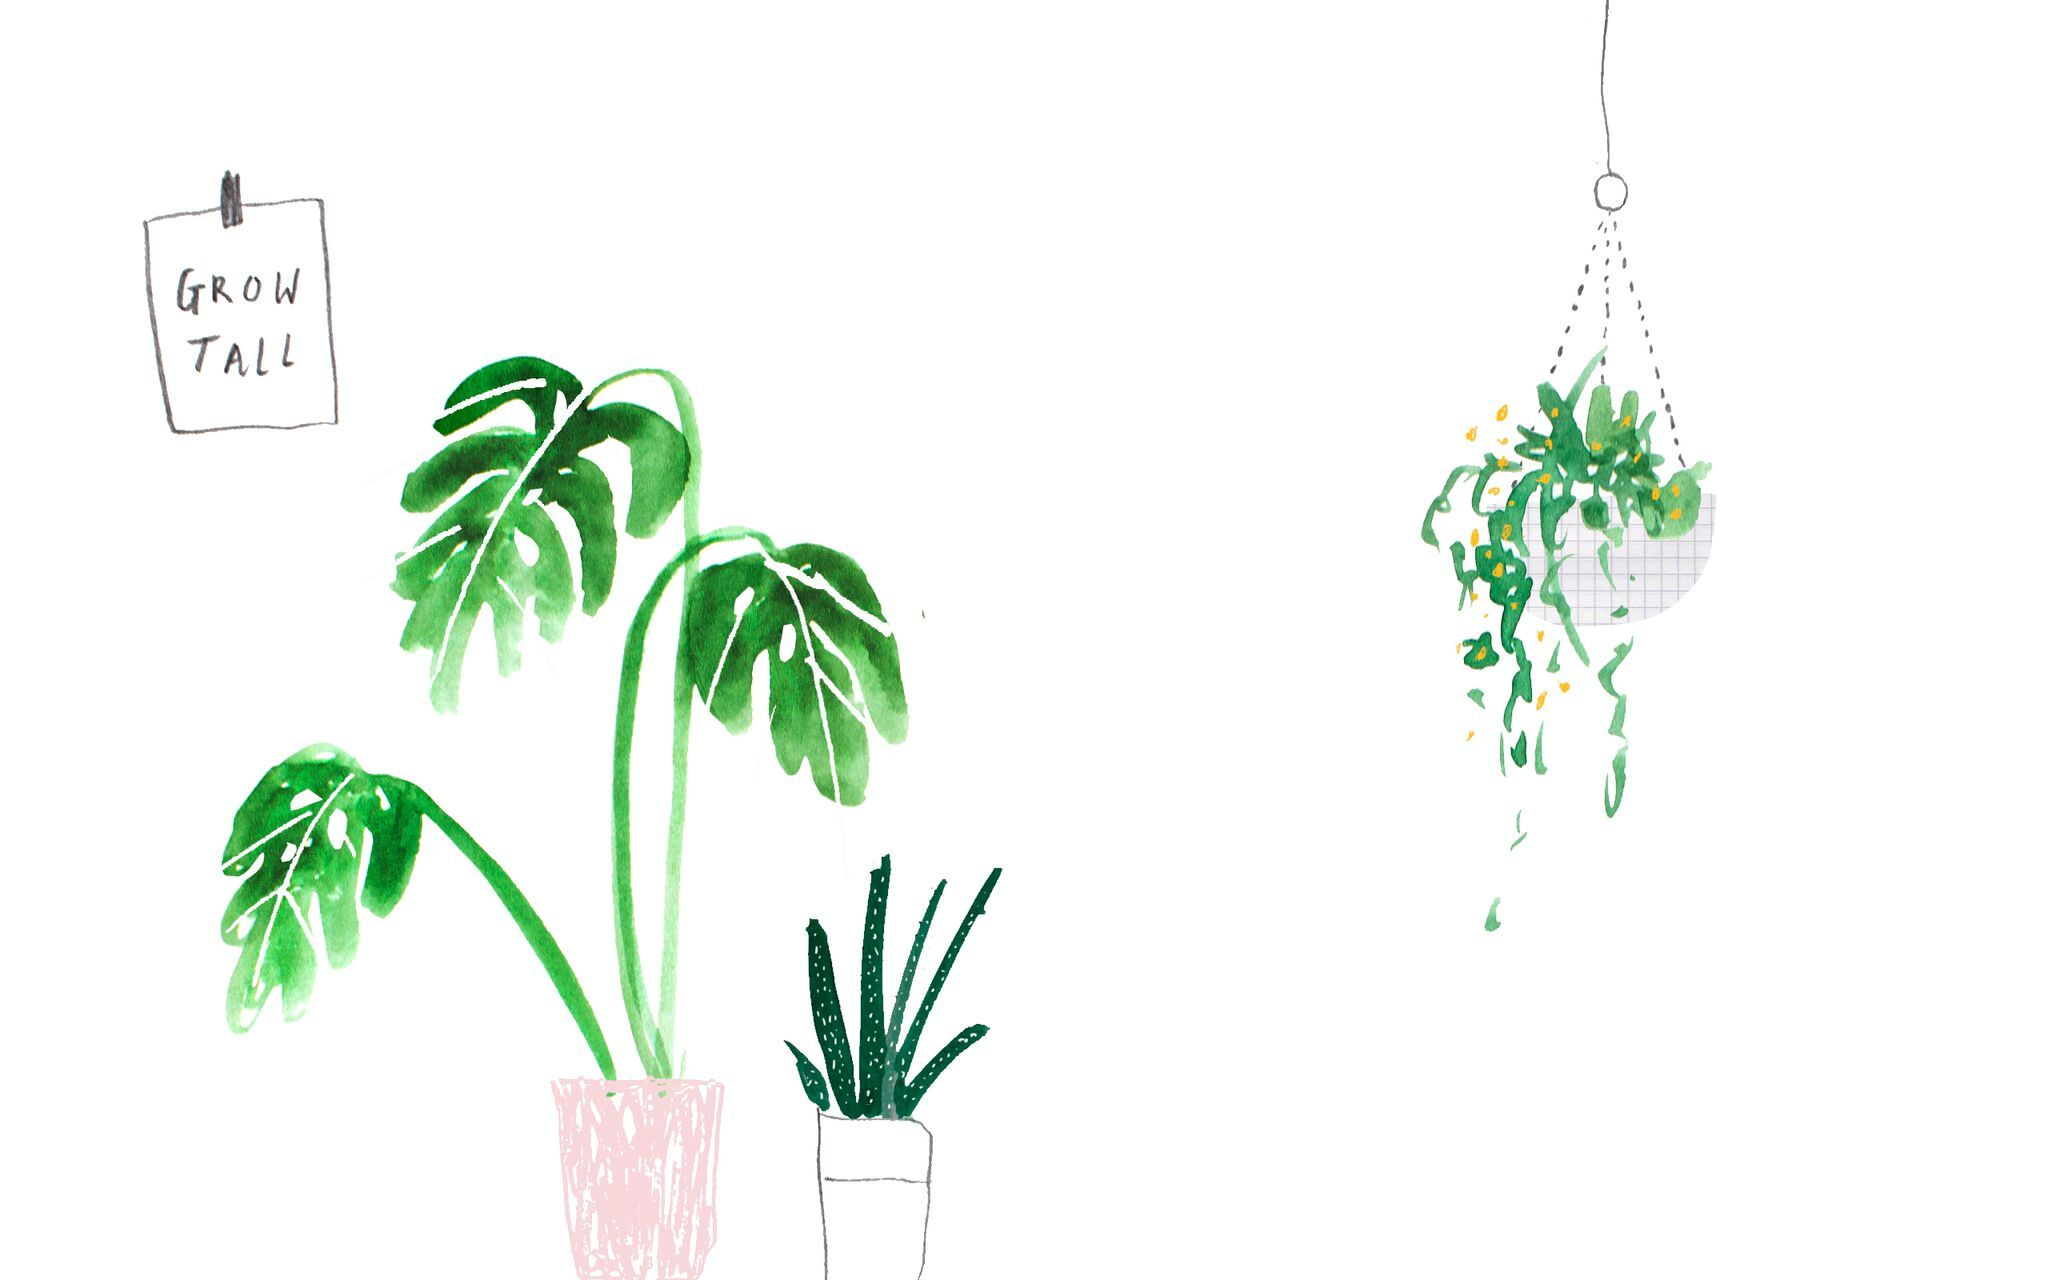 2048x1280 Green pink illustrated watercolour plants palms desktop wallpaper ...